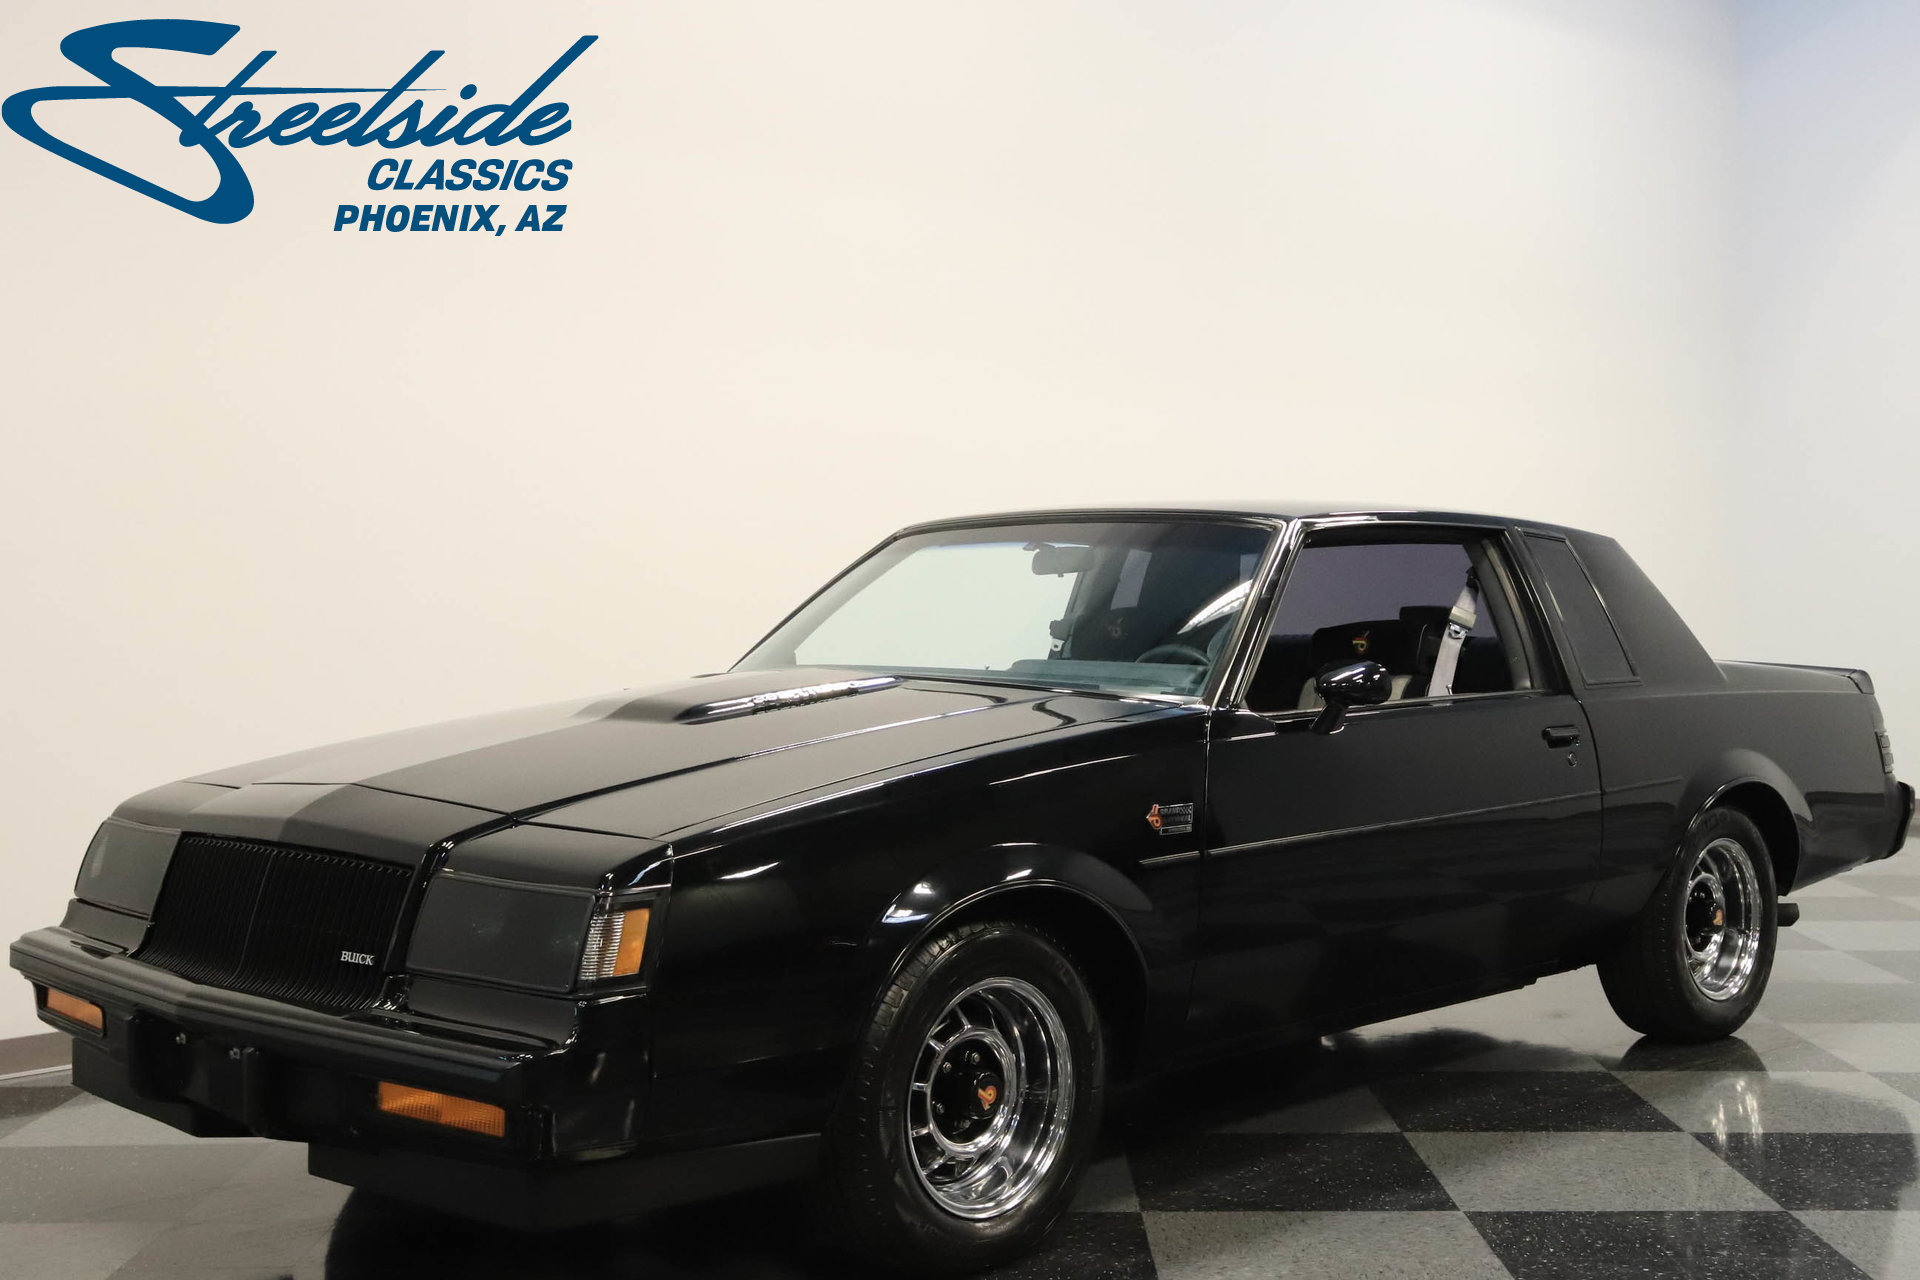 ... 1987 Buick Grand National. Spincar view. Play Video